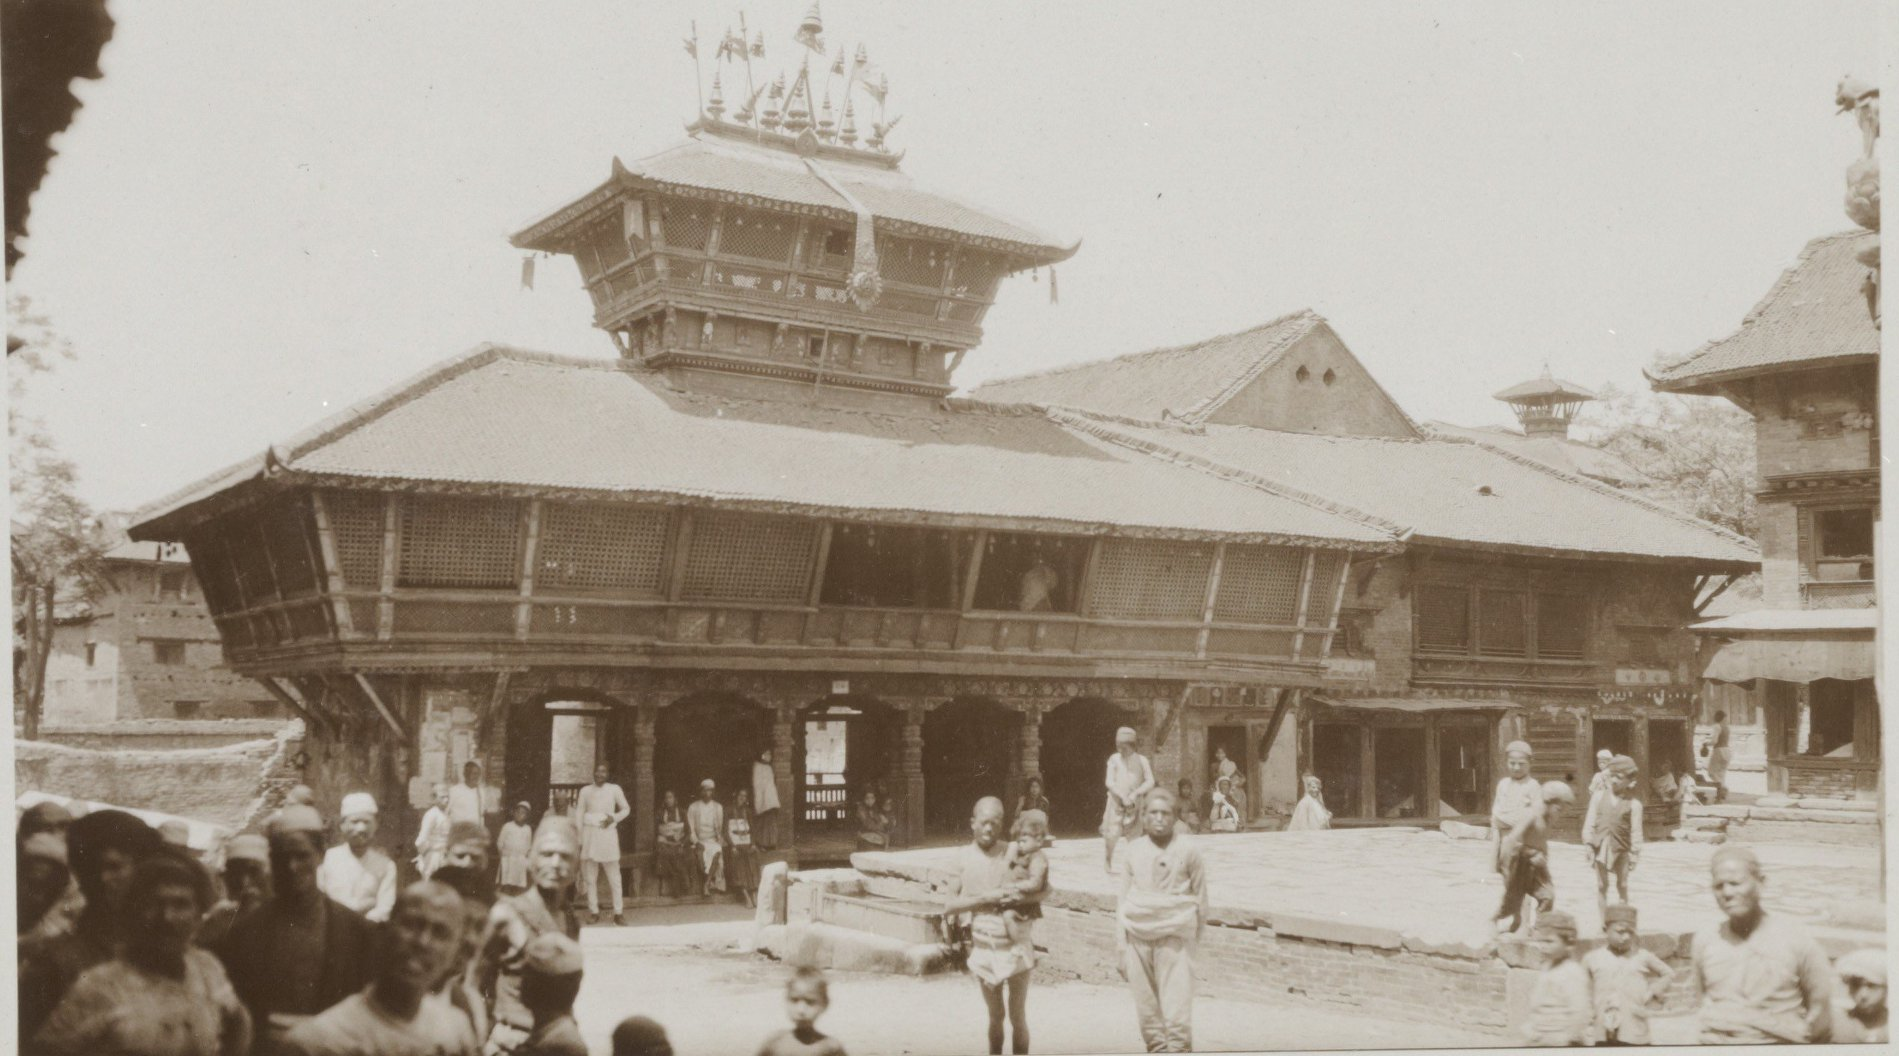 Bhimsen temple: the temple of trade master image